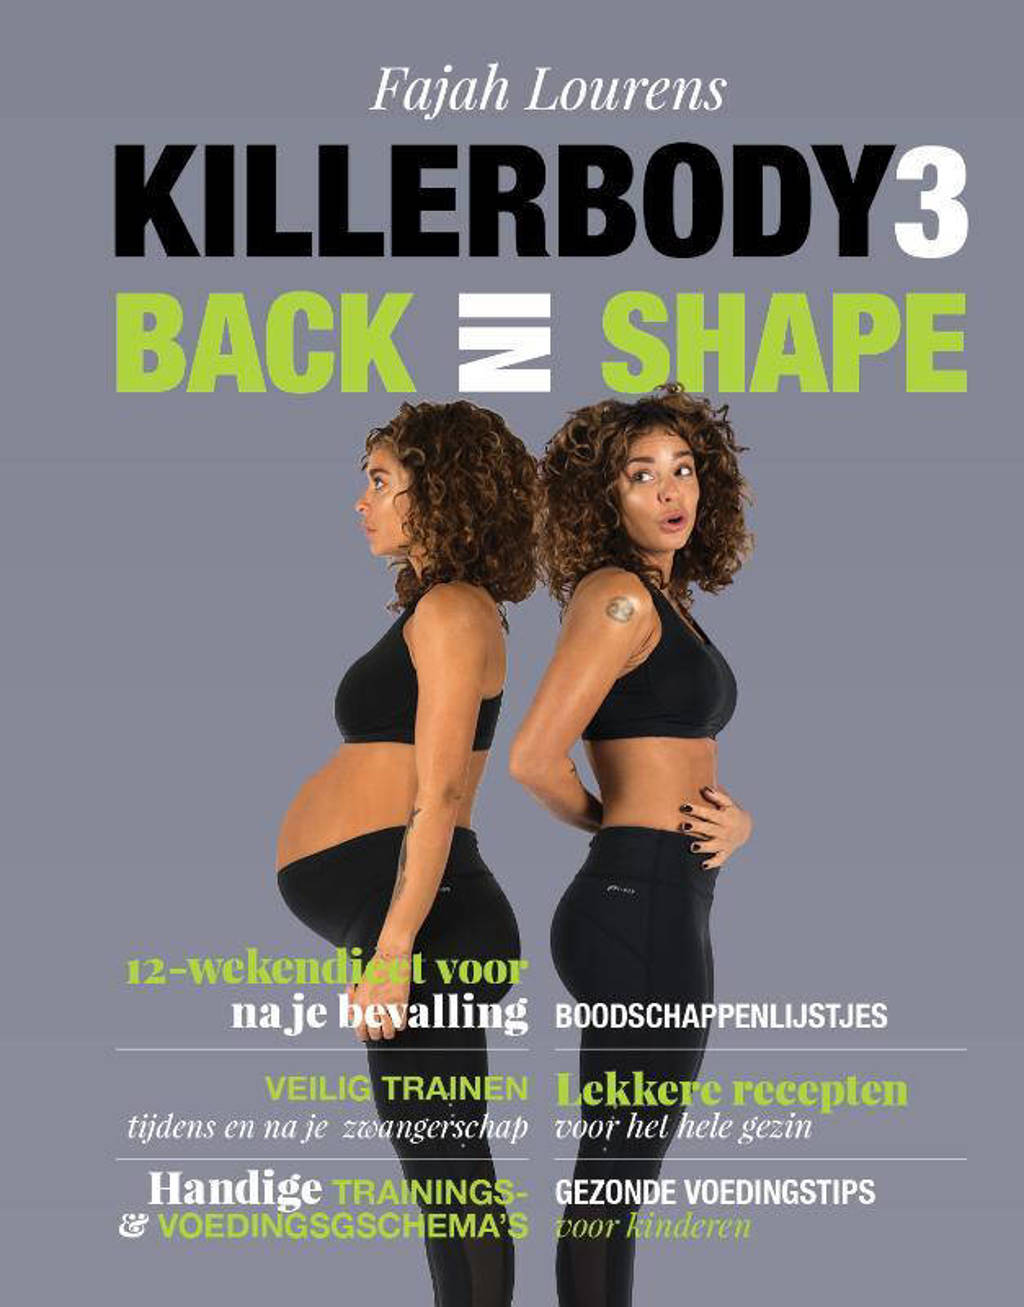 Killerbody Back in shape - Fajah Lourens